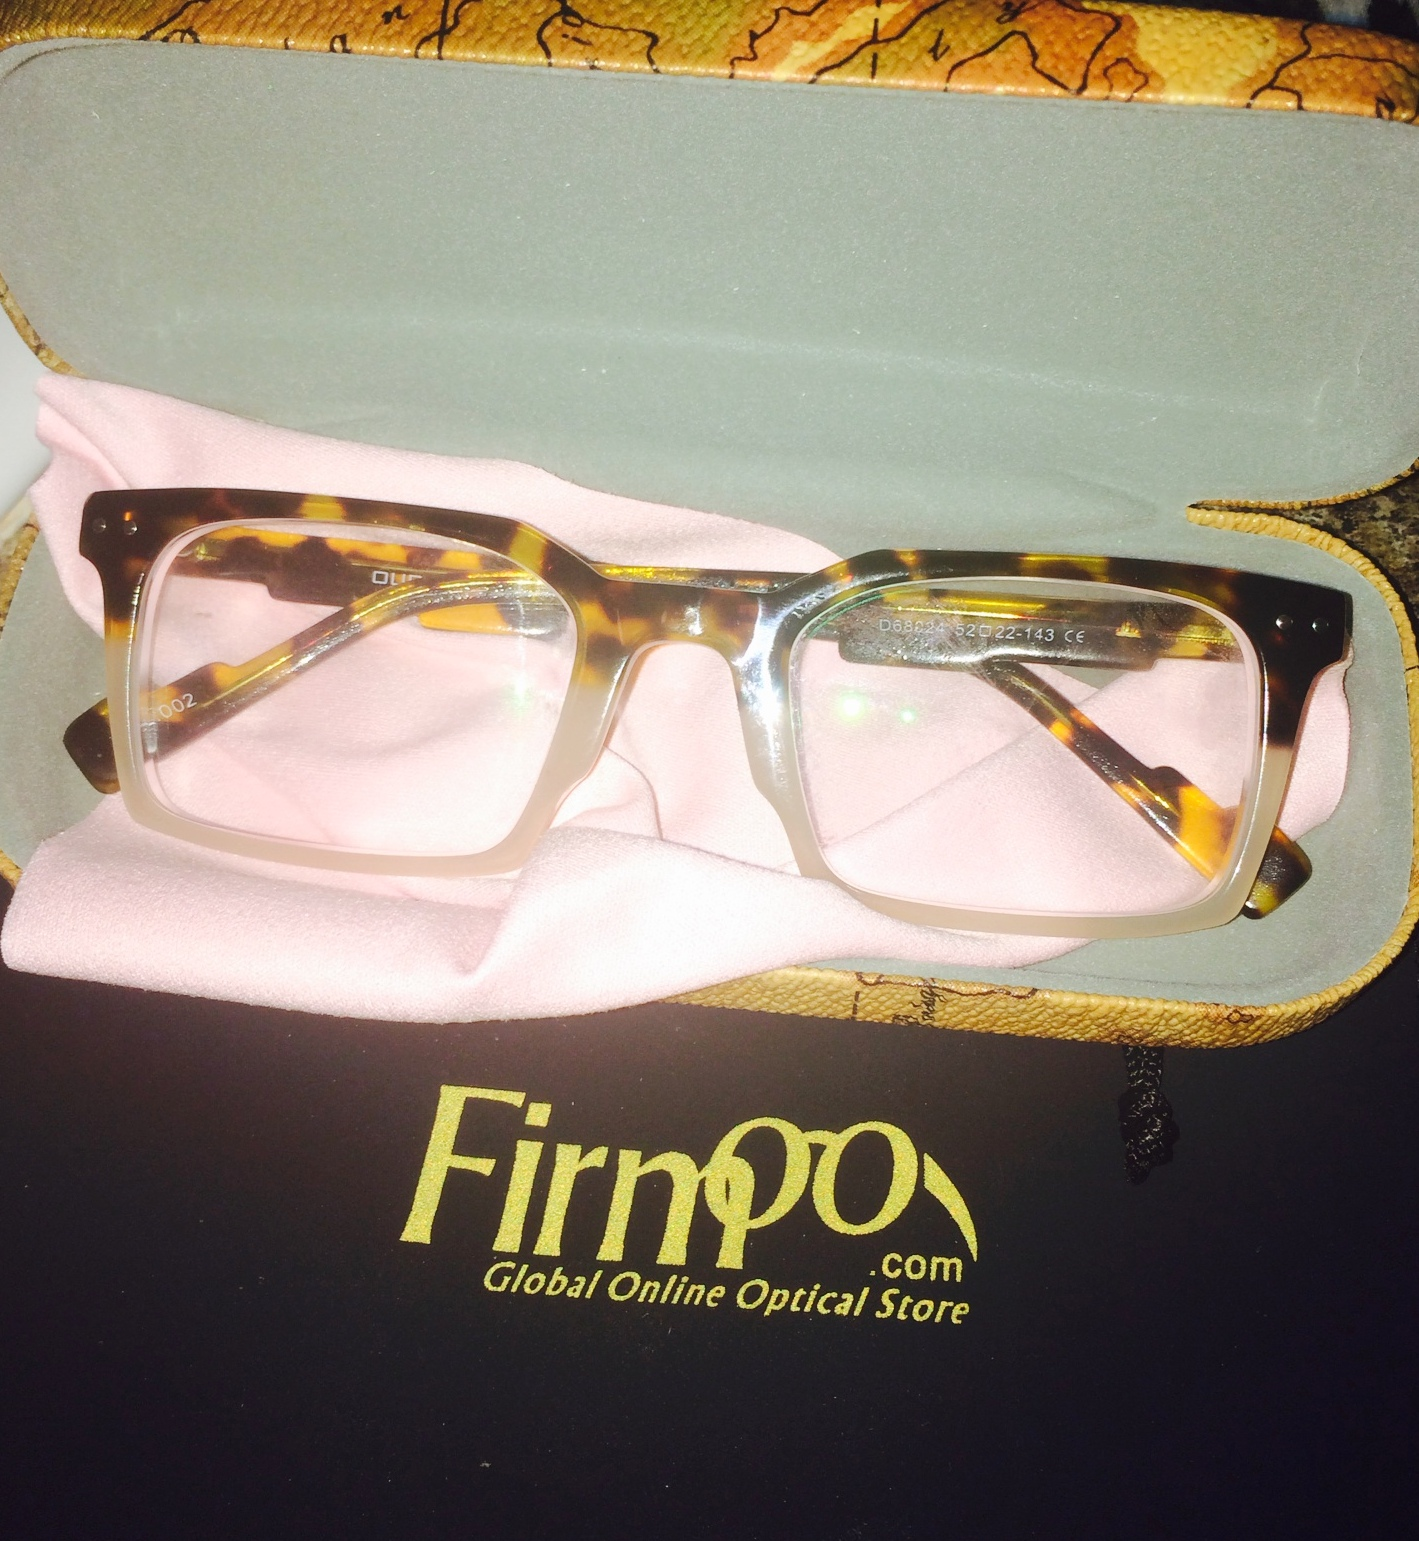 4d858d4c40c All Firmoo glasses come in a cute travel case and with a black travel bag.